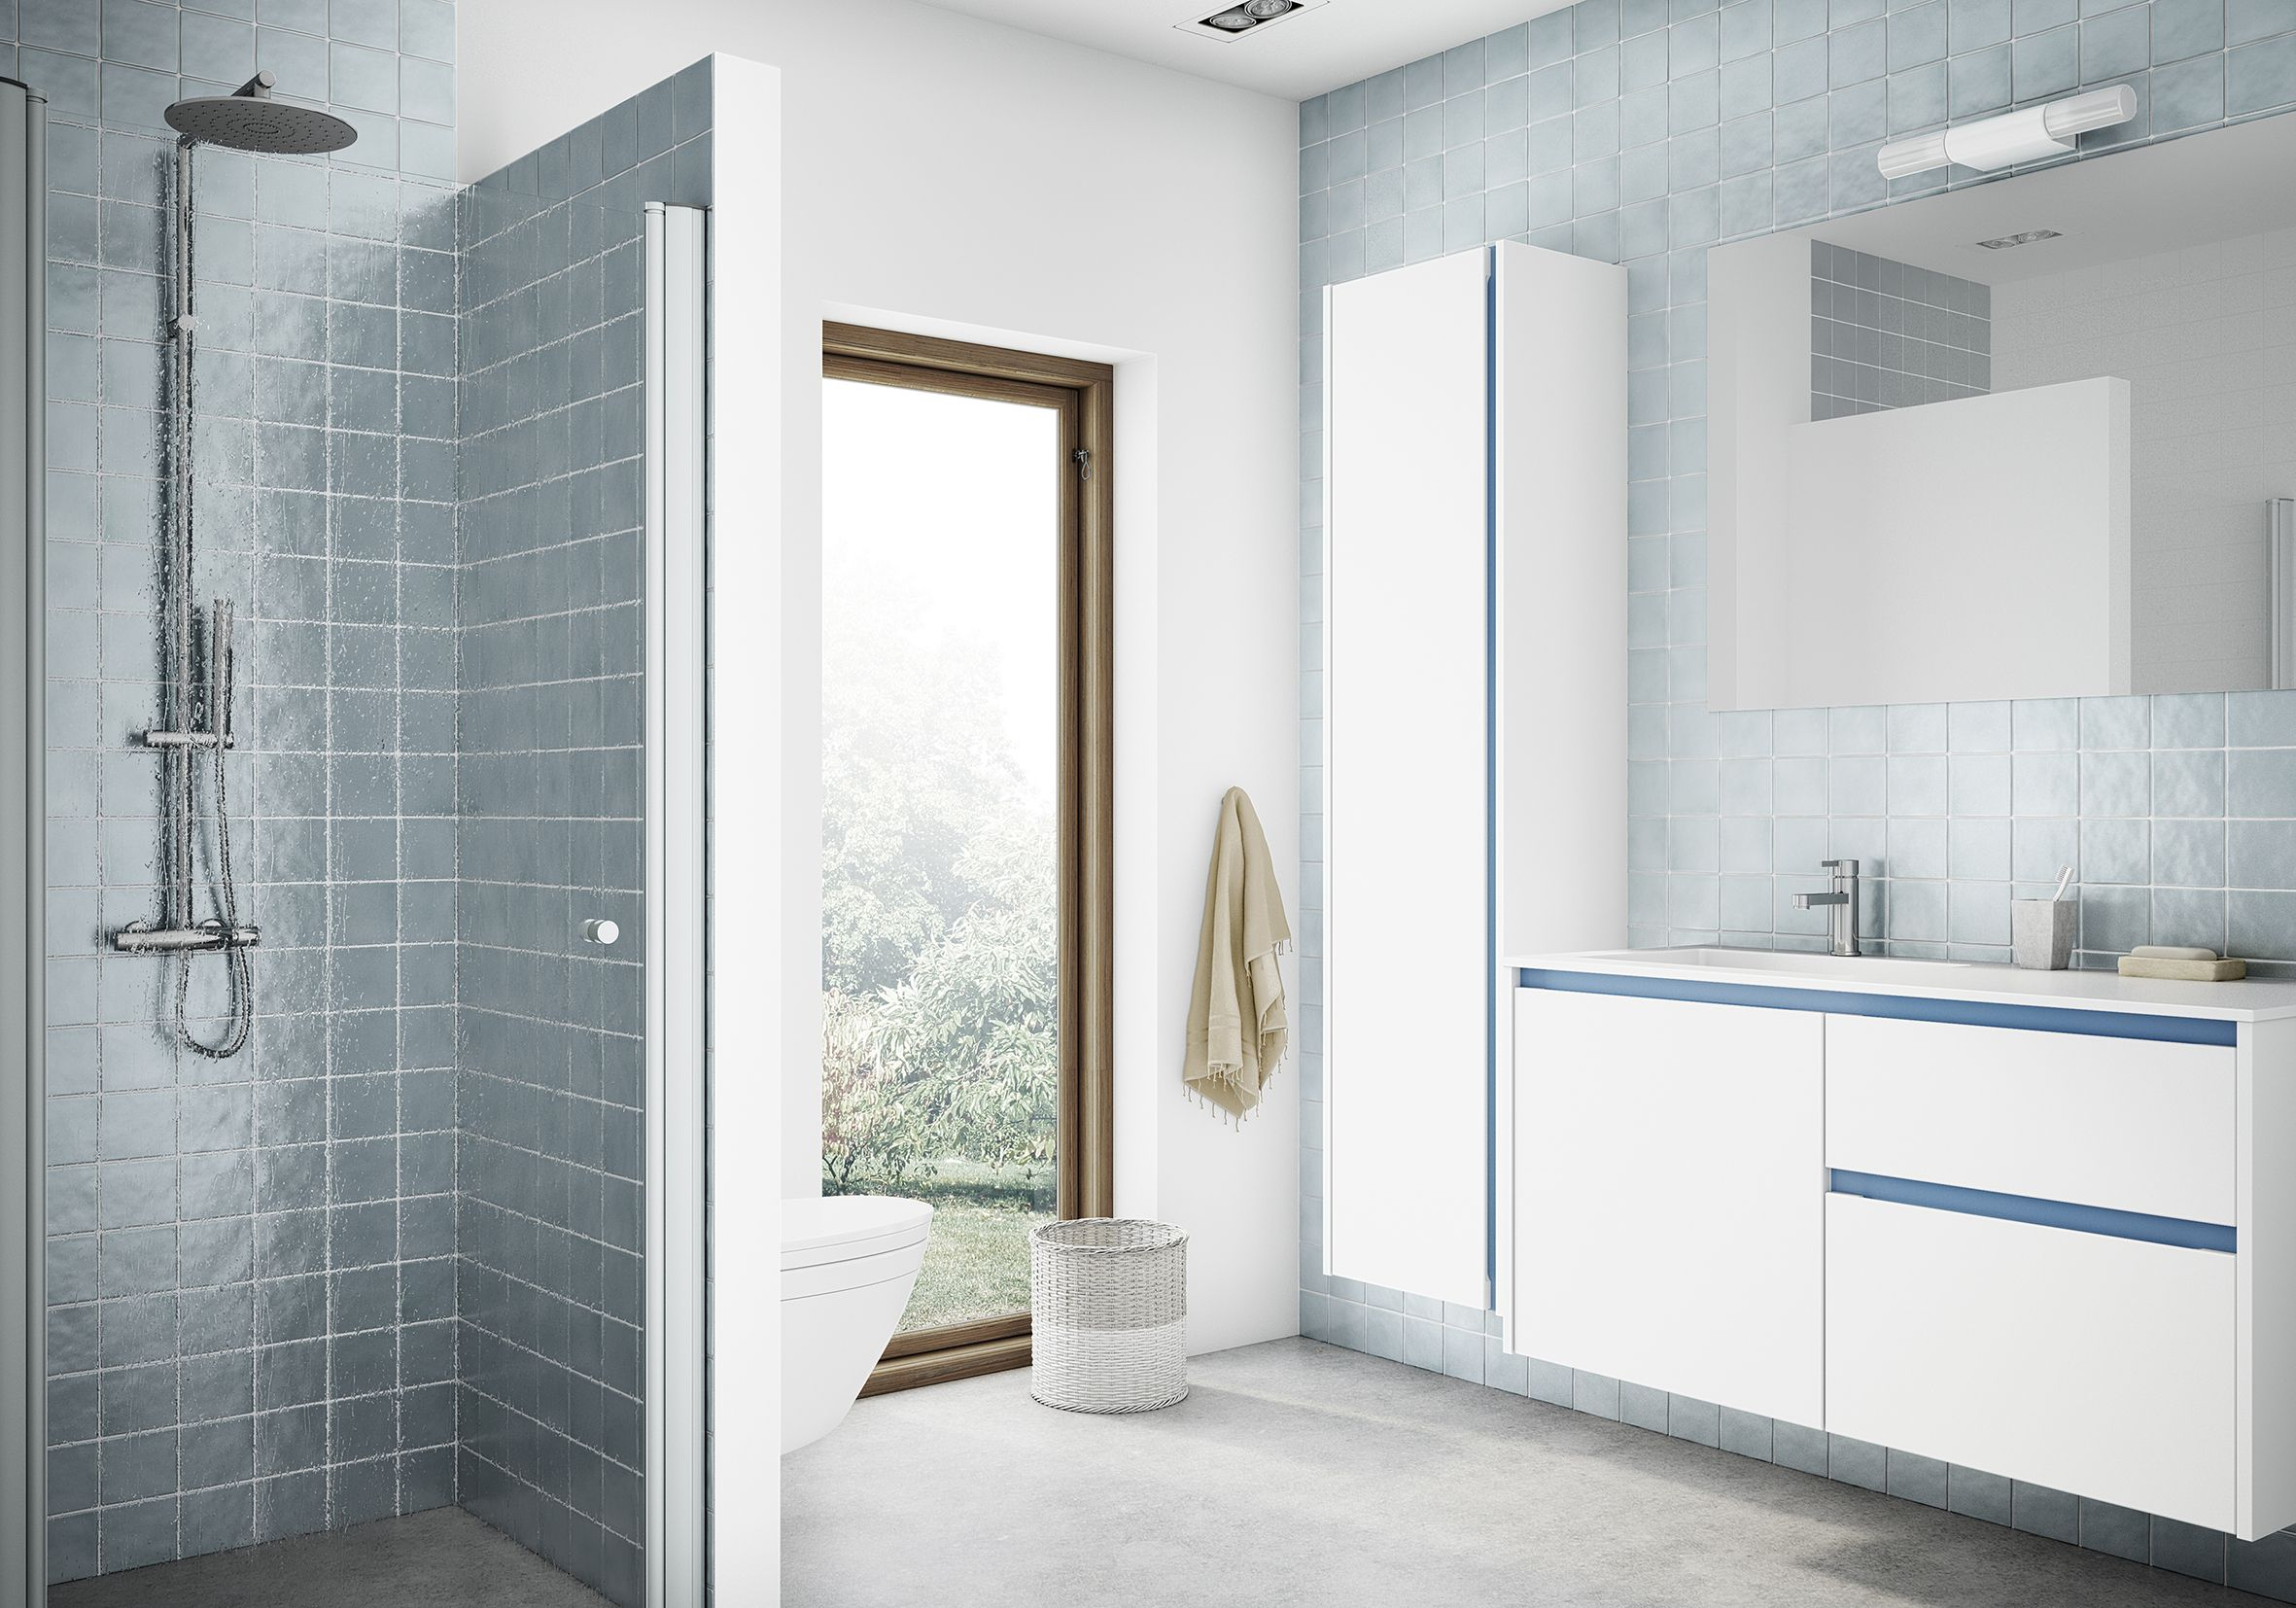 Add Some Zest To Your Bathroom With White Tinta Doors And Blue Profiles Tinta Lets You Make Your Own Mark On Your Bathroom Wi Kylpyhuone Bathroom Bathr